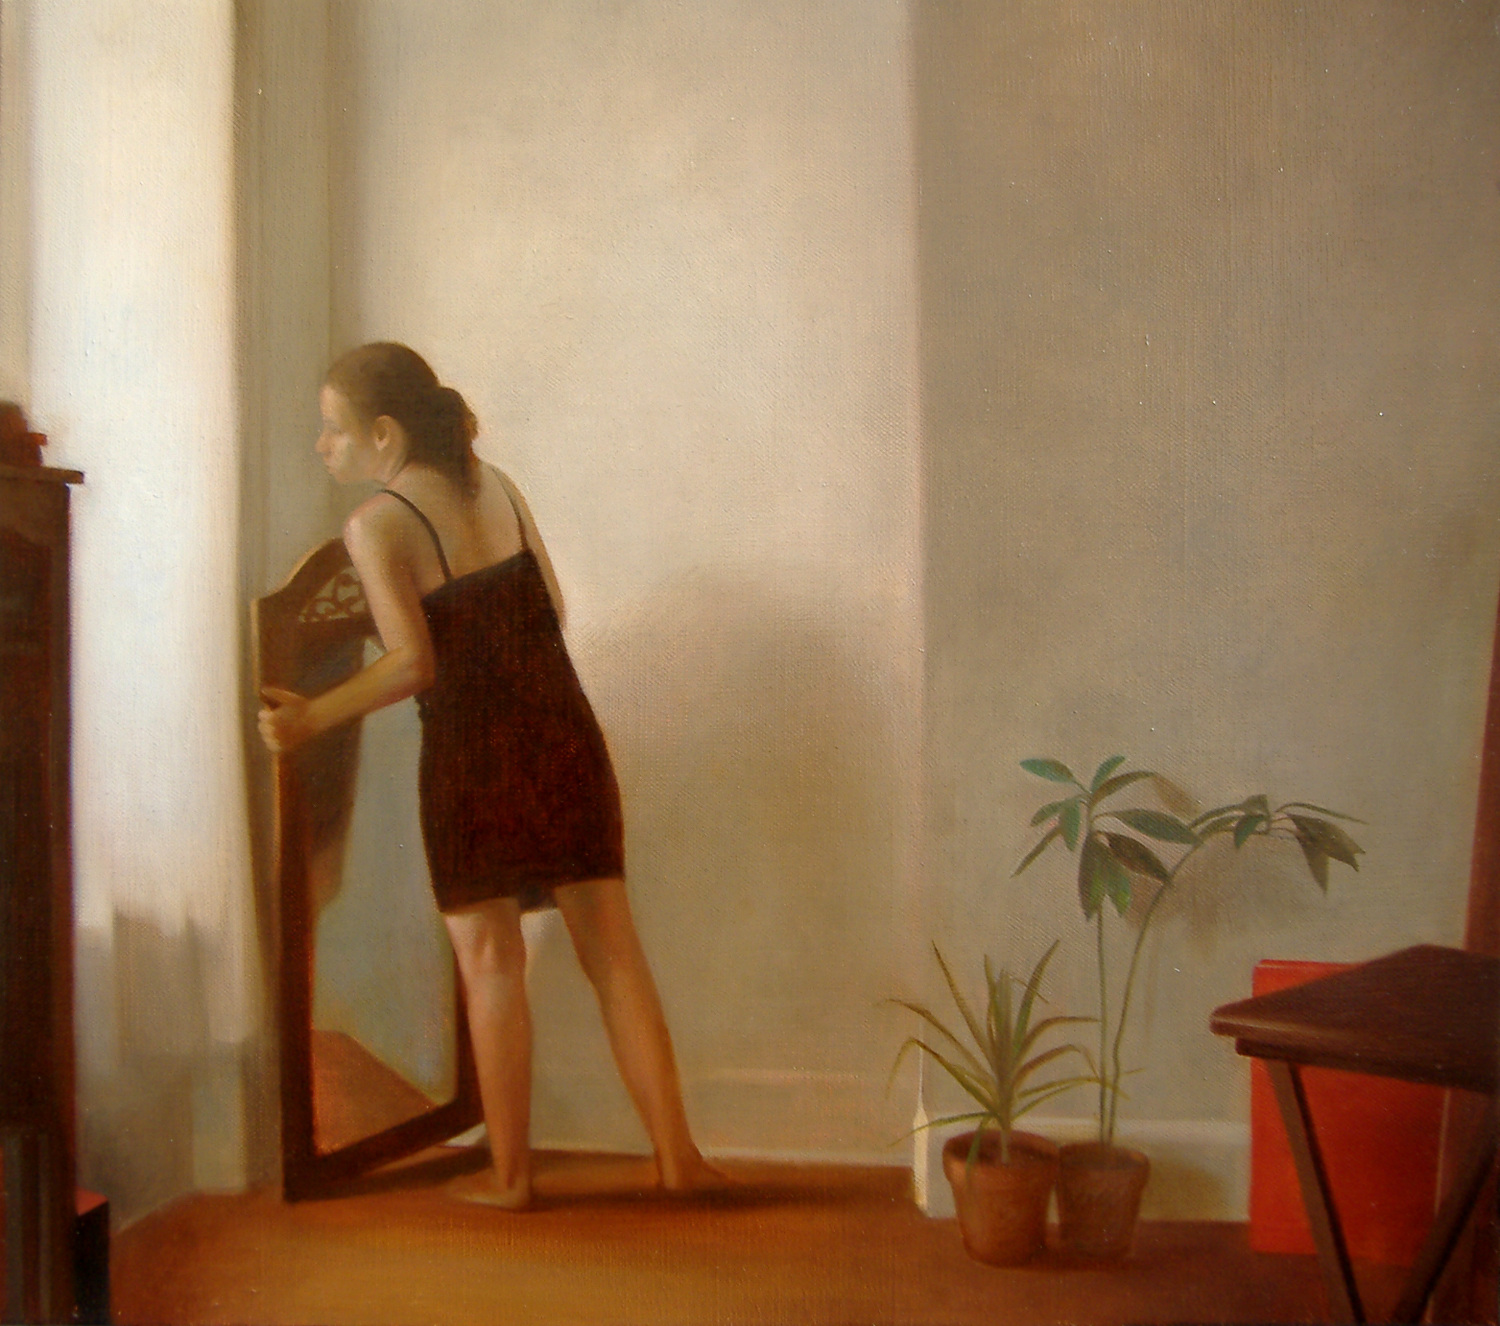 Woman Moving a Mirror , 2007, Oil on linen, 18 x 24 inches, Private collection